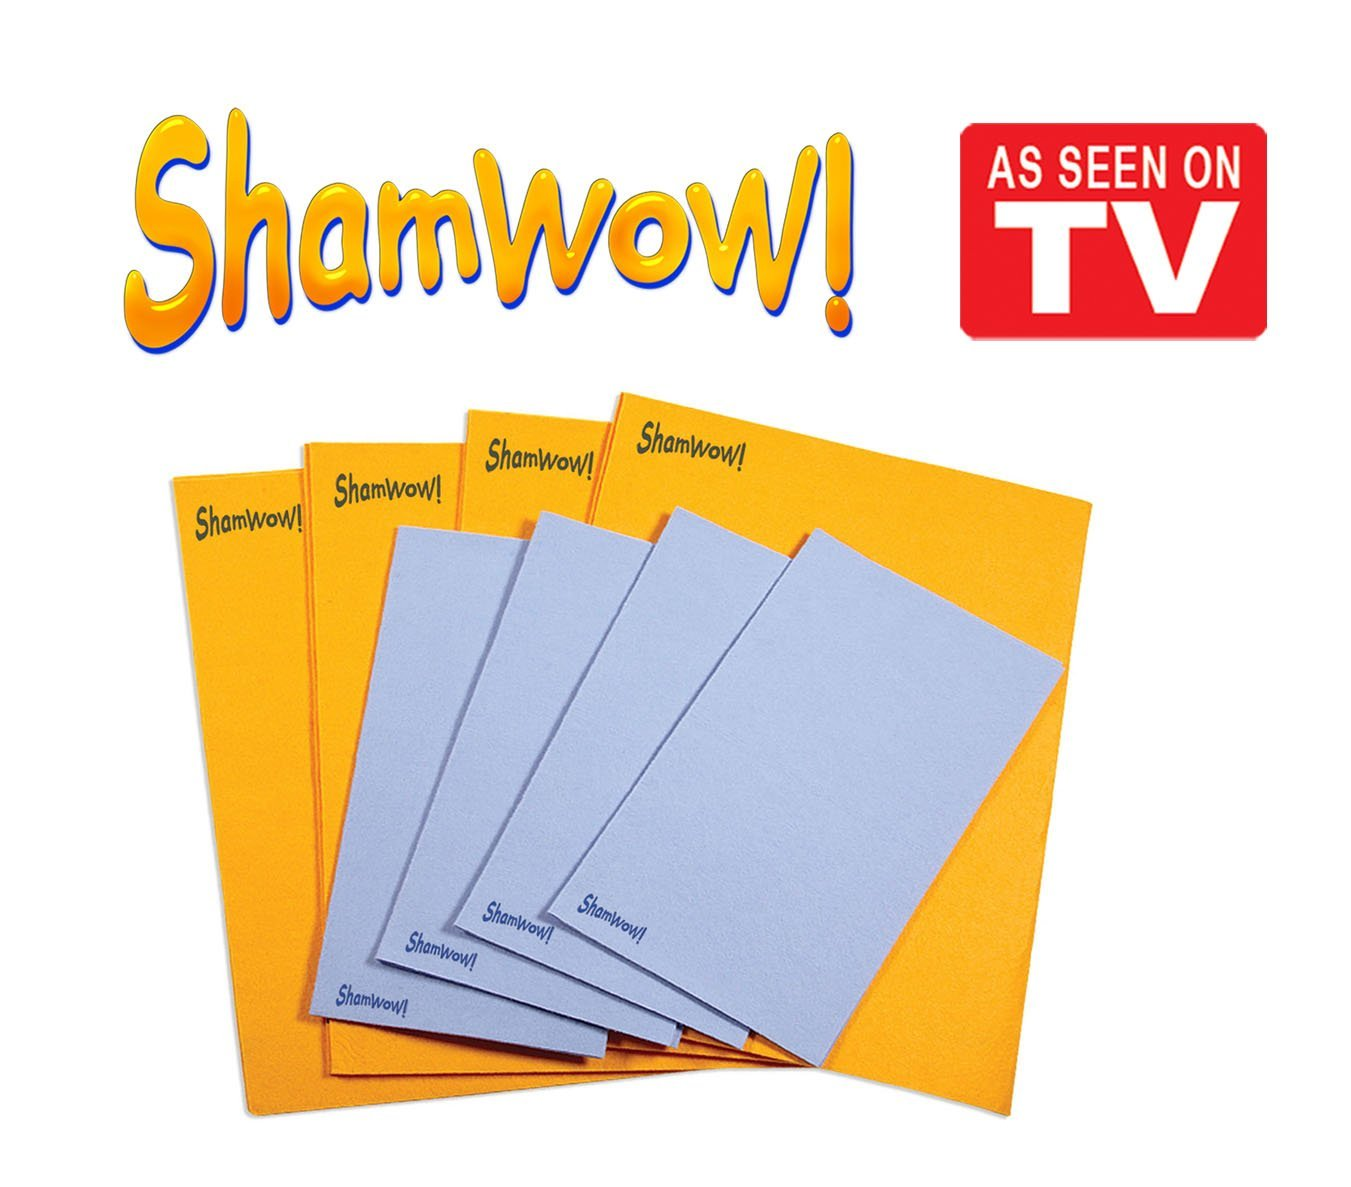 The Original Shamwow - Super Absorbent Multi-purpose Cleaning Shammy (Chamois) Towel Cloth, Machine Washable, Will Not Scratch (8 Pack: 4 Large Orange and 4 Small Blue)